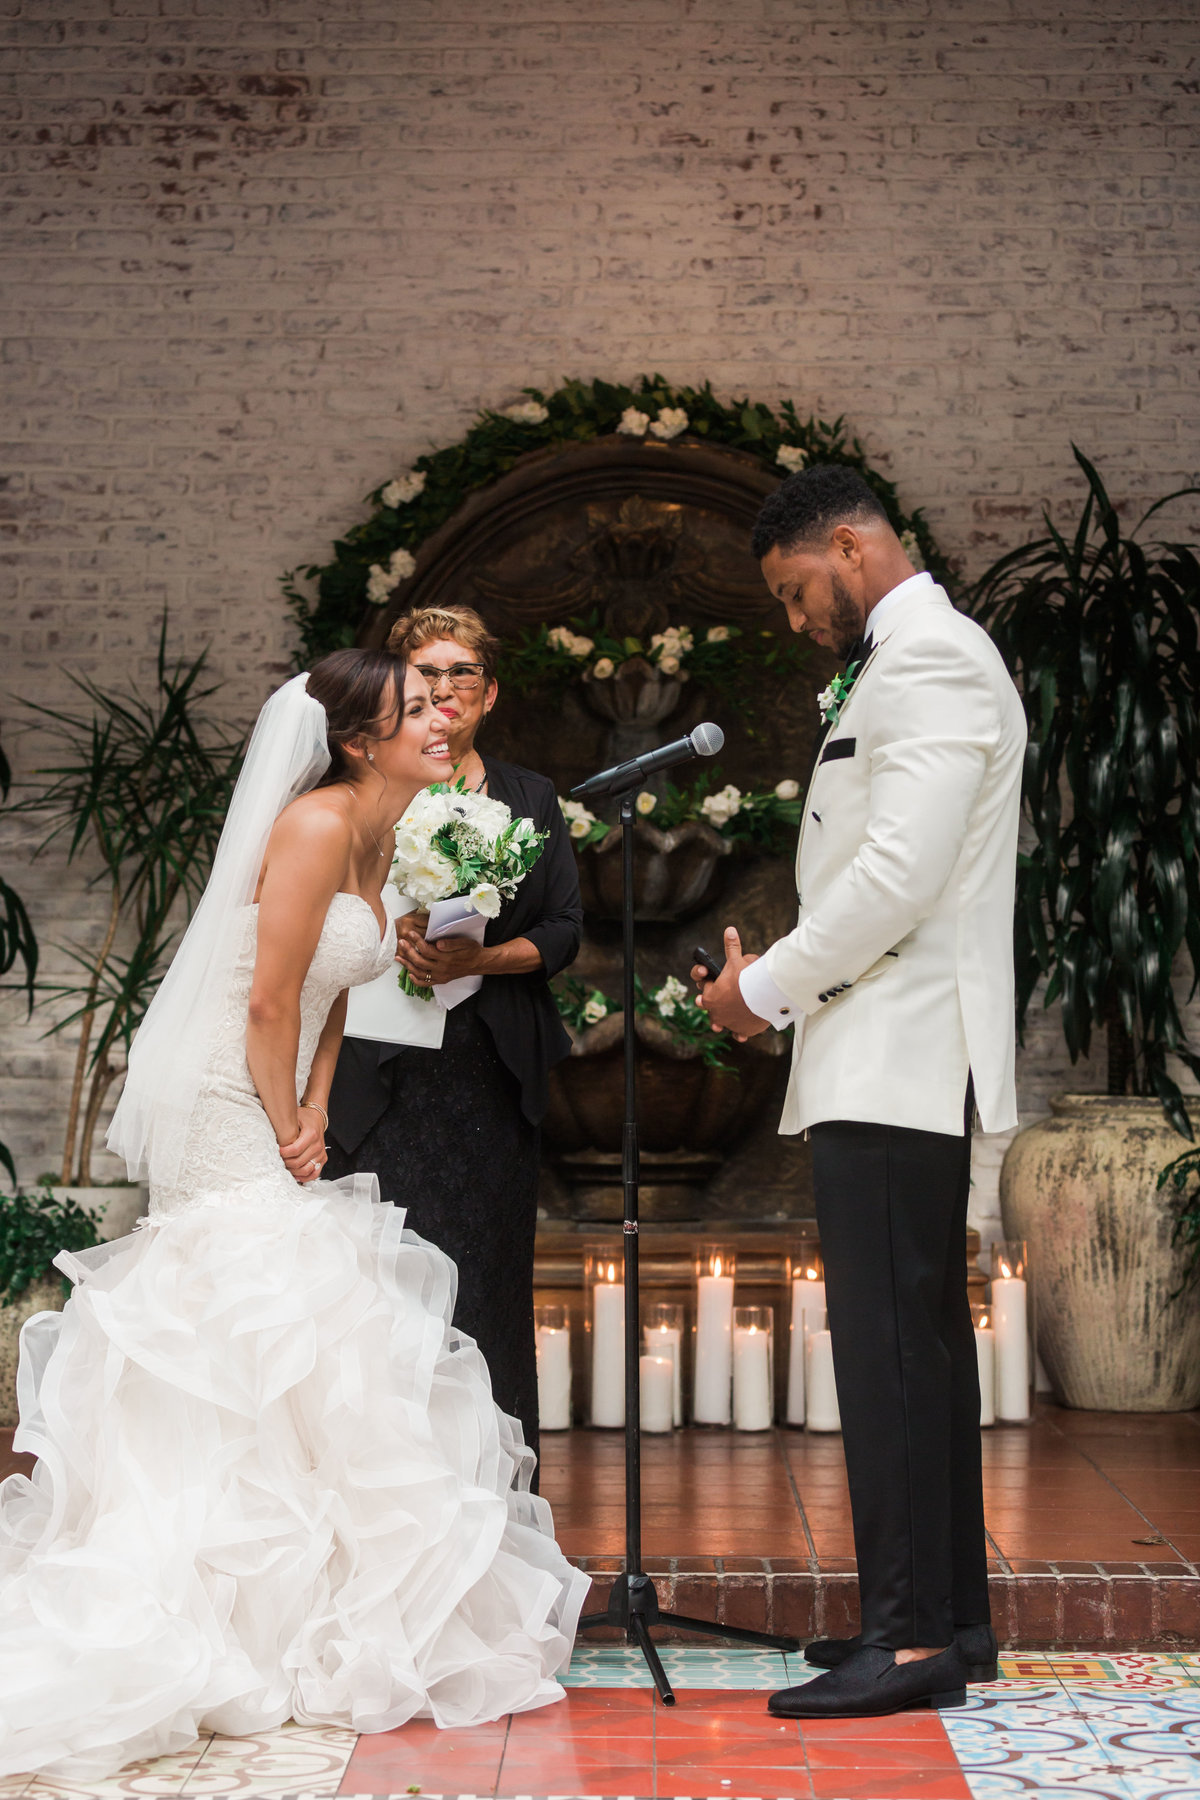 Ebell_Los_Angeles_Malcolm_Smith_NFL_Navy_Brass_Wedding_Valorie_Darling_Photography - 77 of 122